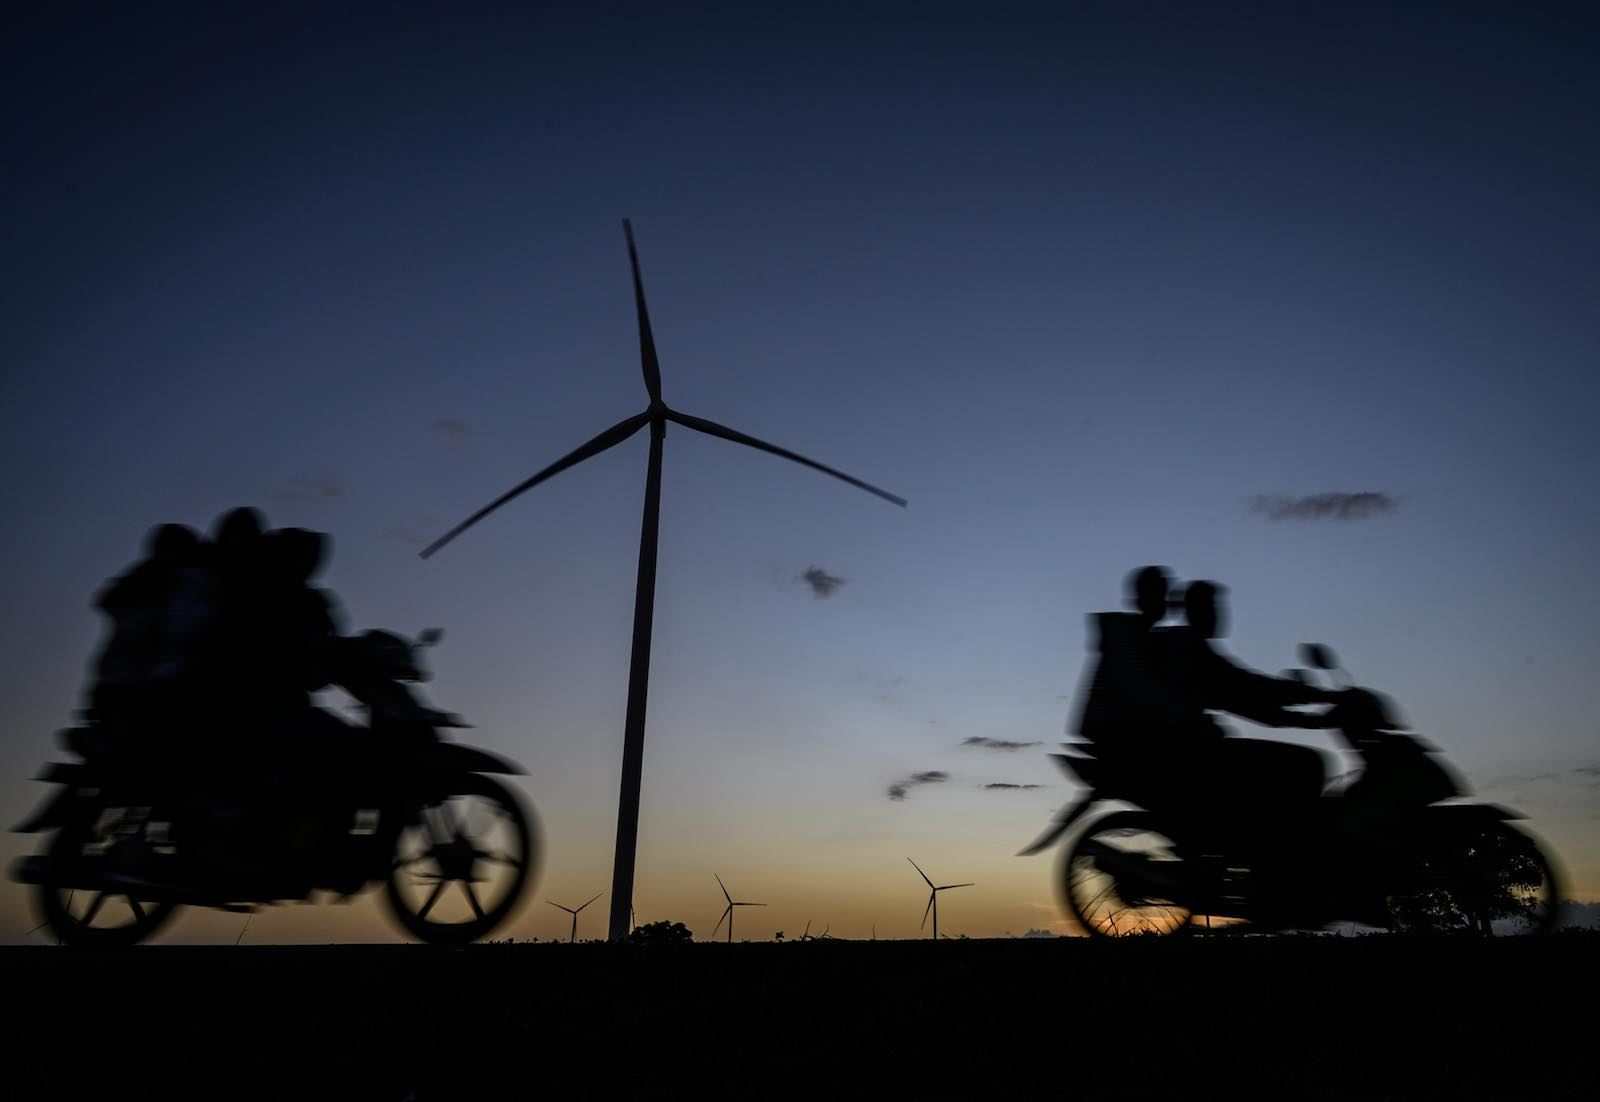 Catching the breeze: wind turbines in South Sulawesi (Photo: Hariandi Hafid via Getty)